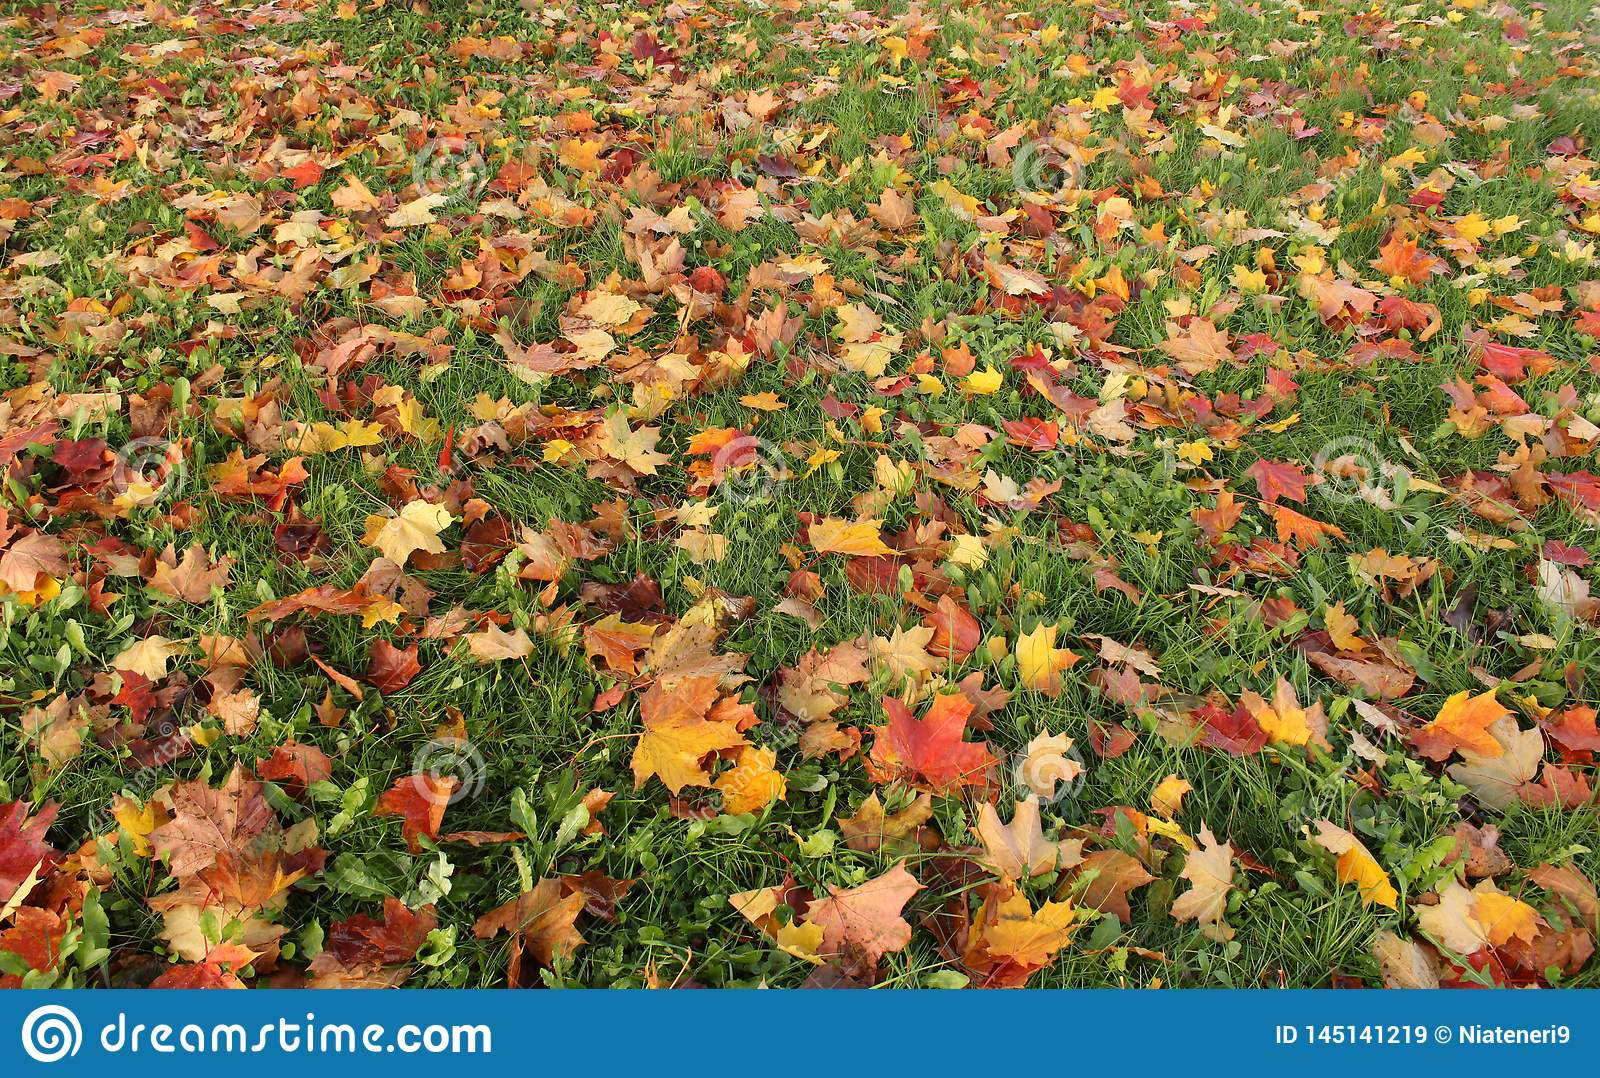 Colored leaves in the grass